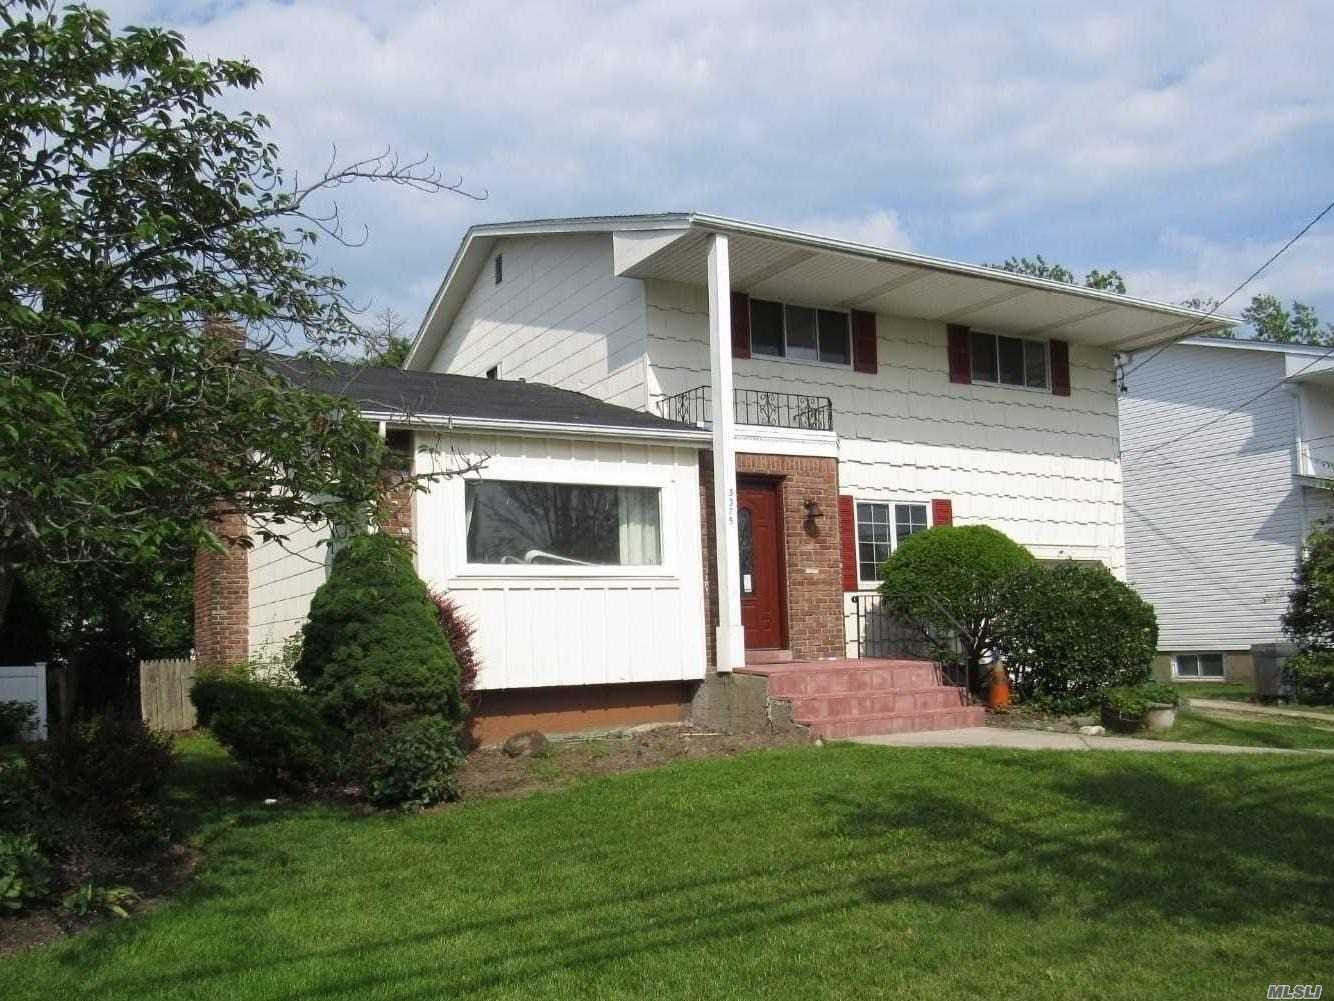 4 Bedroom Colonial, .5 Bath, Full Bath With Jacuzzi, Eik With Stainless Steel Appliances, Large Formal Dinning And Living Room, Den With Fireplace And Sliding Glass Doors Leading On To The Deck. Laundry Room, Full Basement, 1 Car Att Garage With Private Driveway.